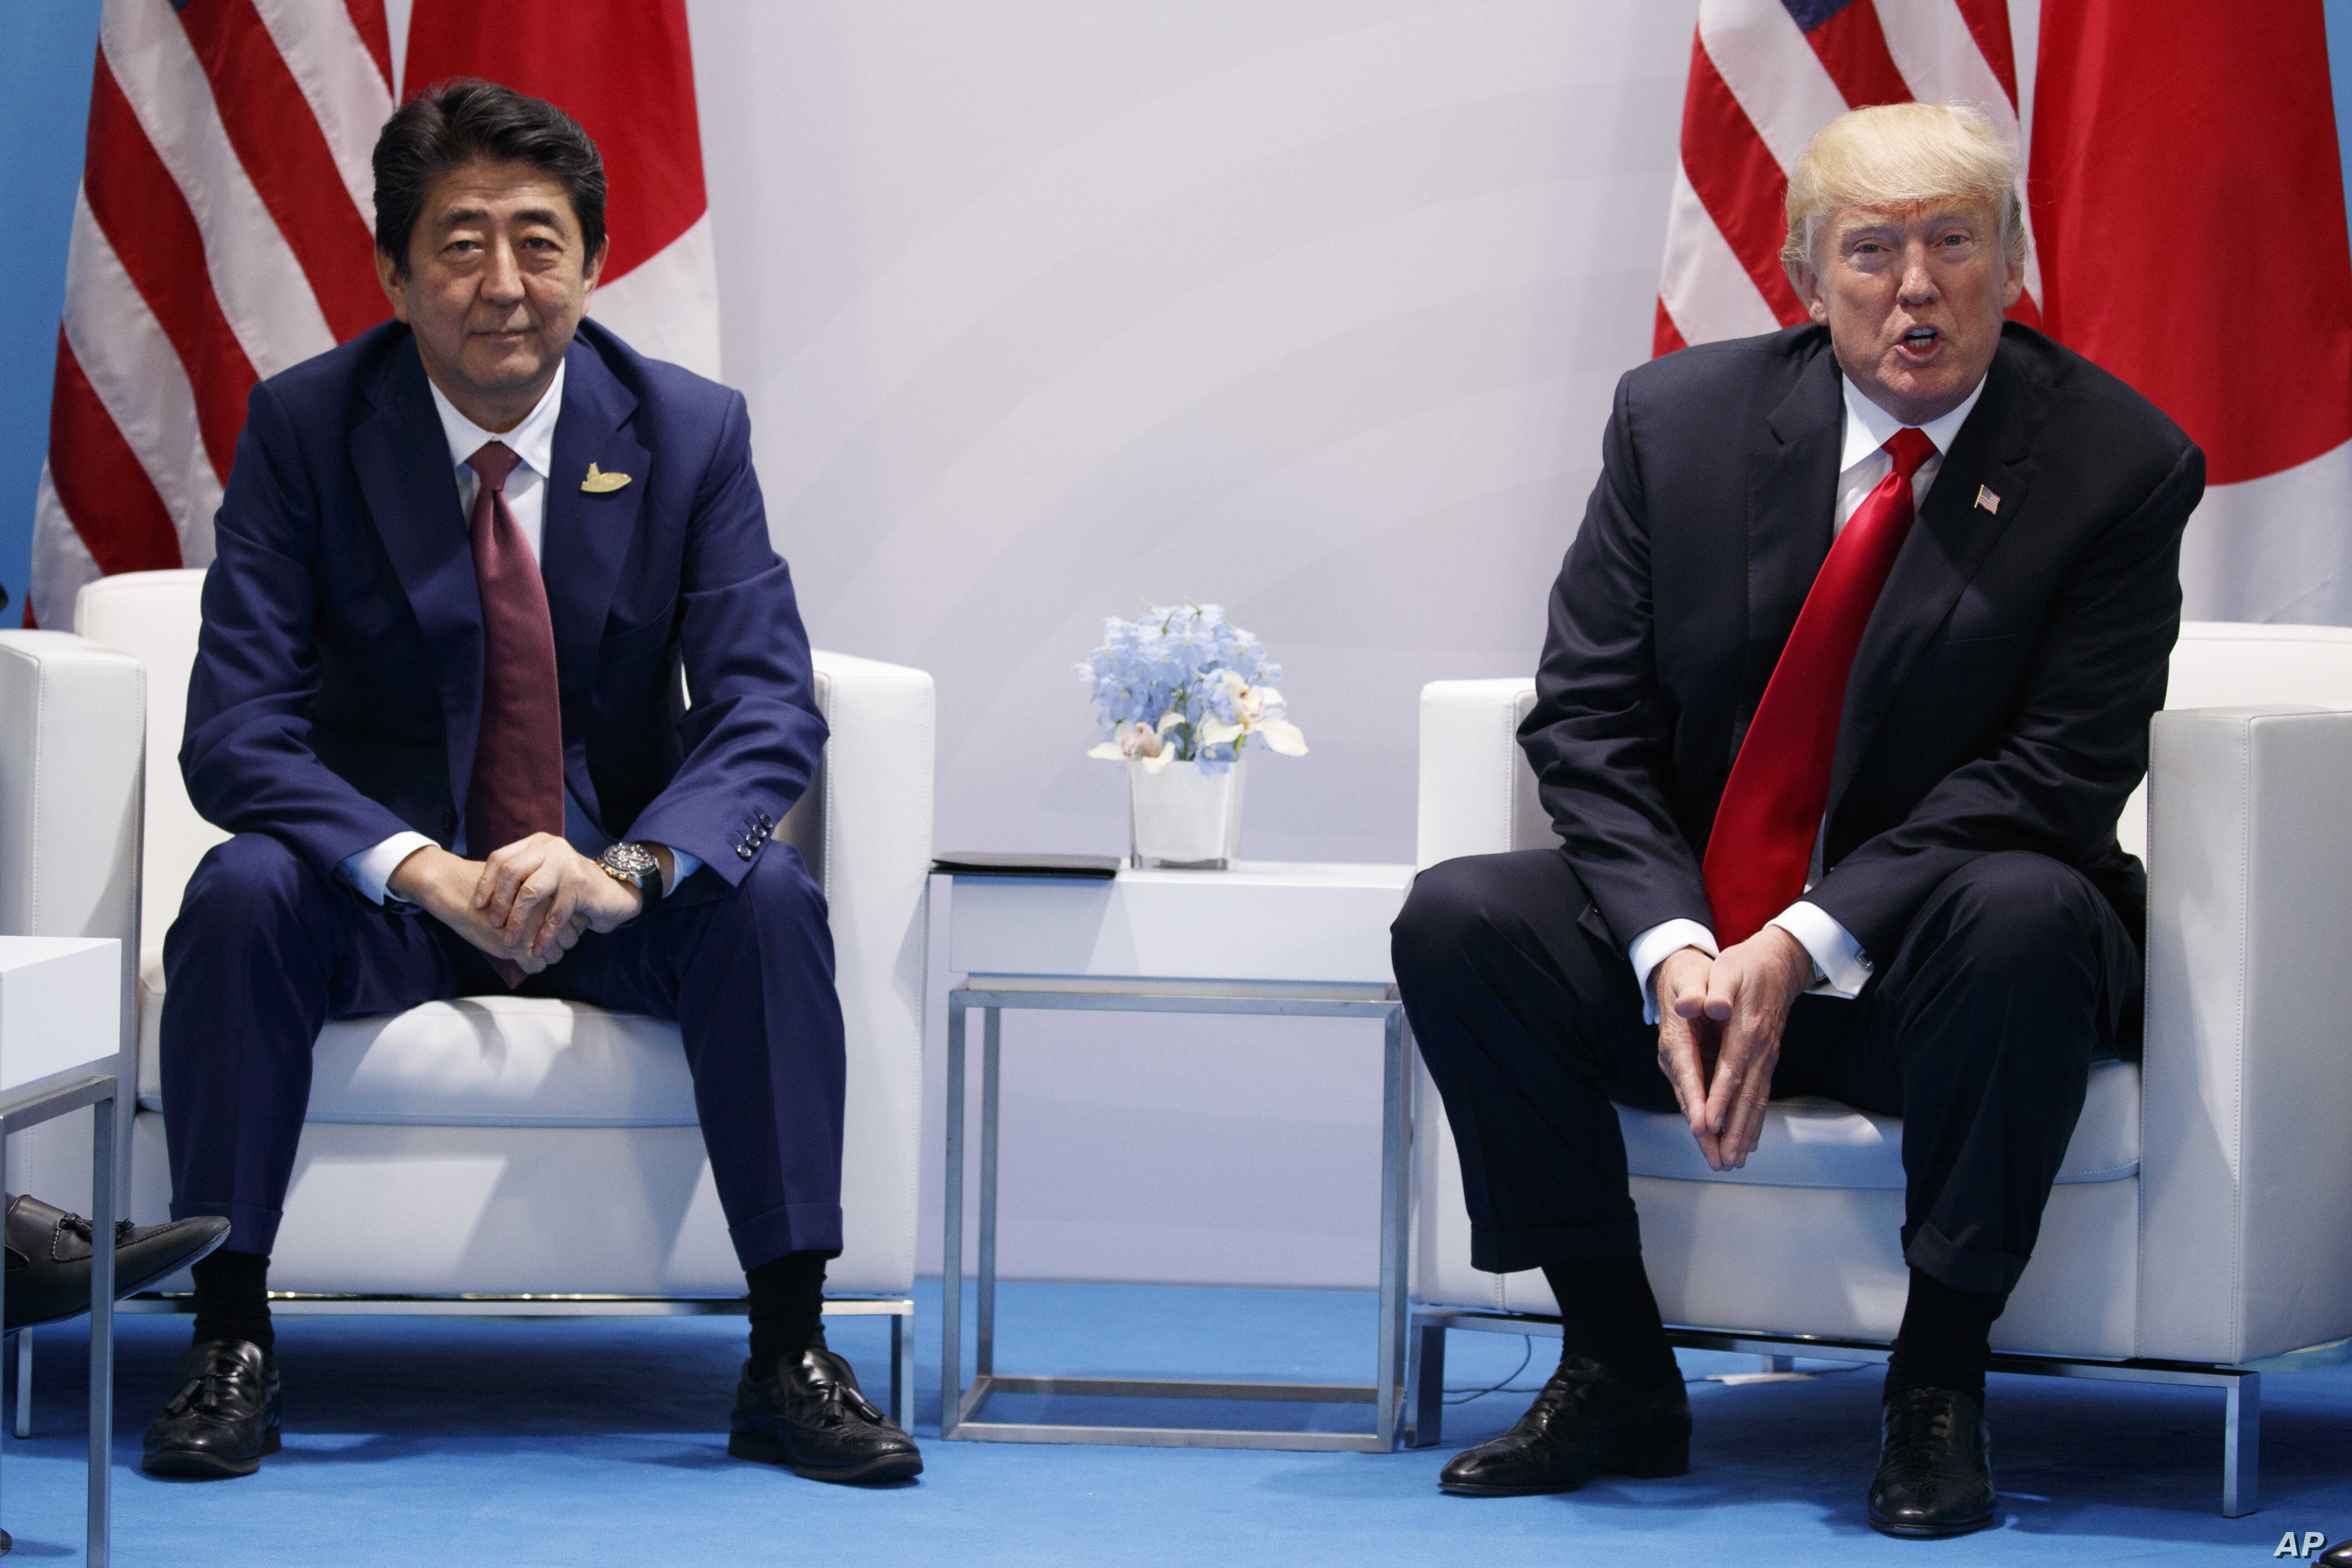 President Donald Trump, right, speaks during a meeting with Japanese Prime Minister Shinzo Abe at the G20 Summit, July 8, 2017, in Hamburg, Germany.